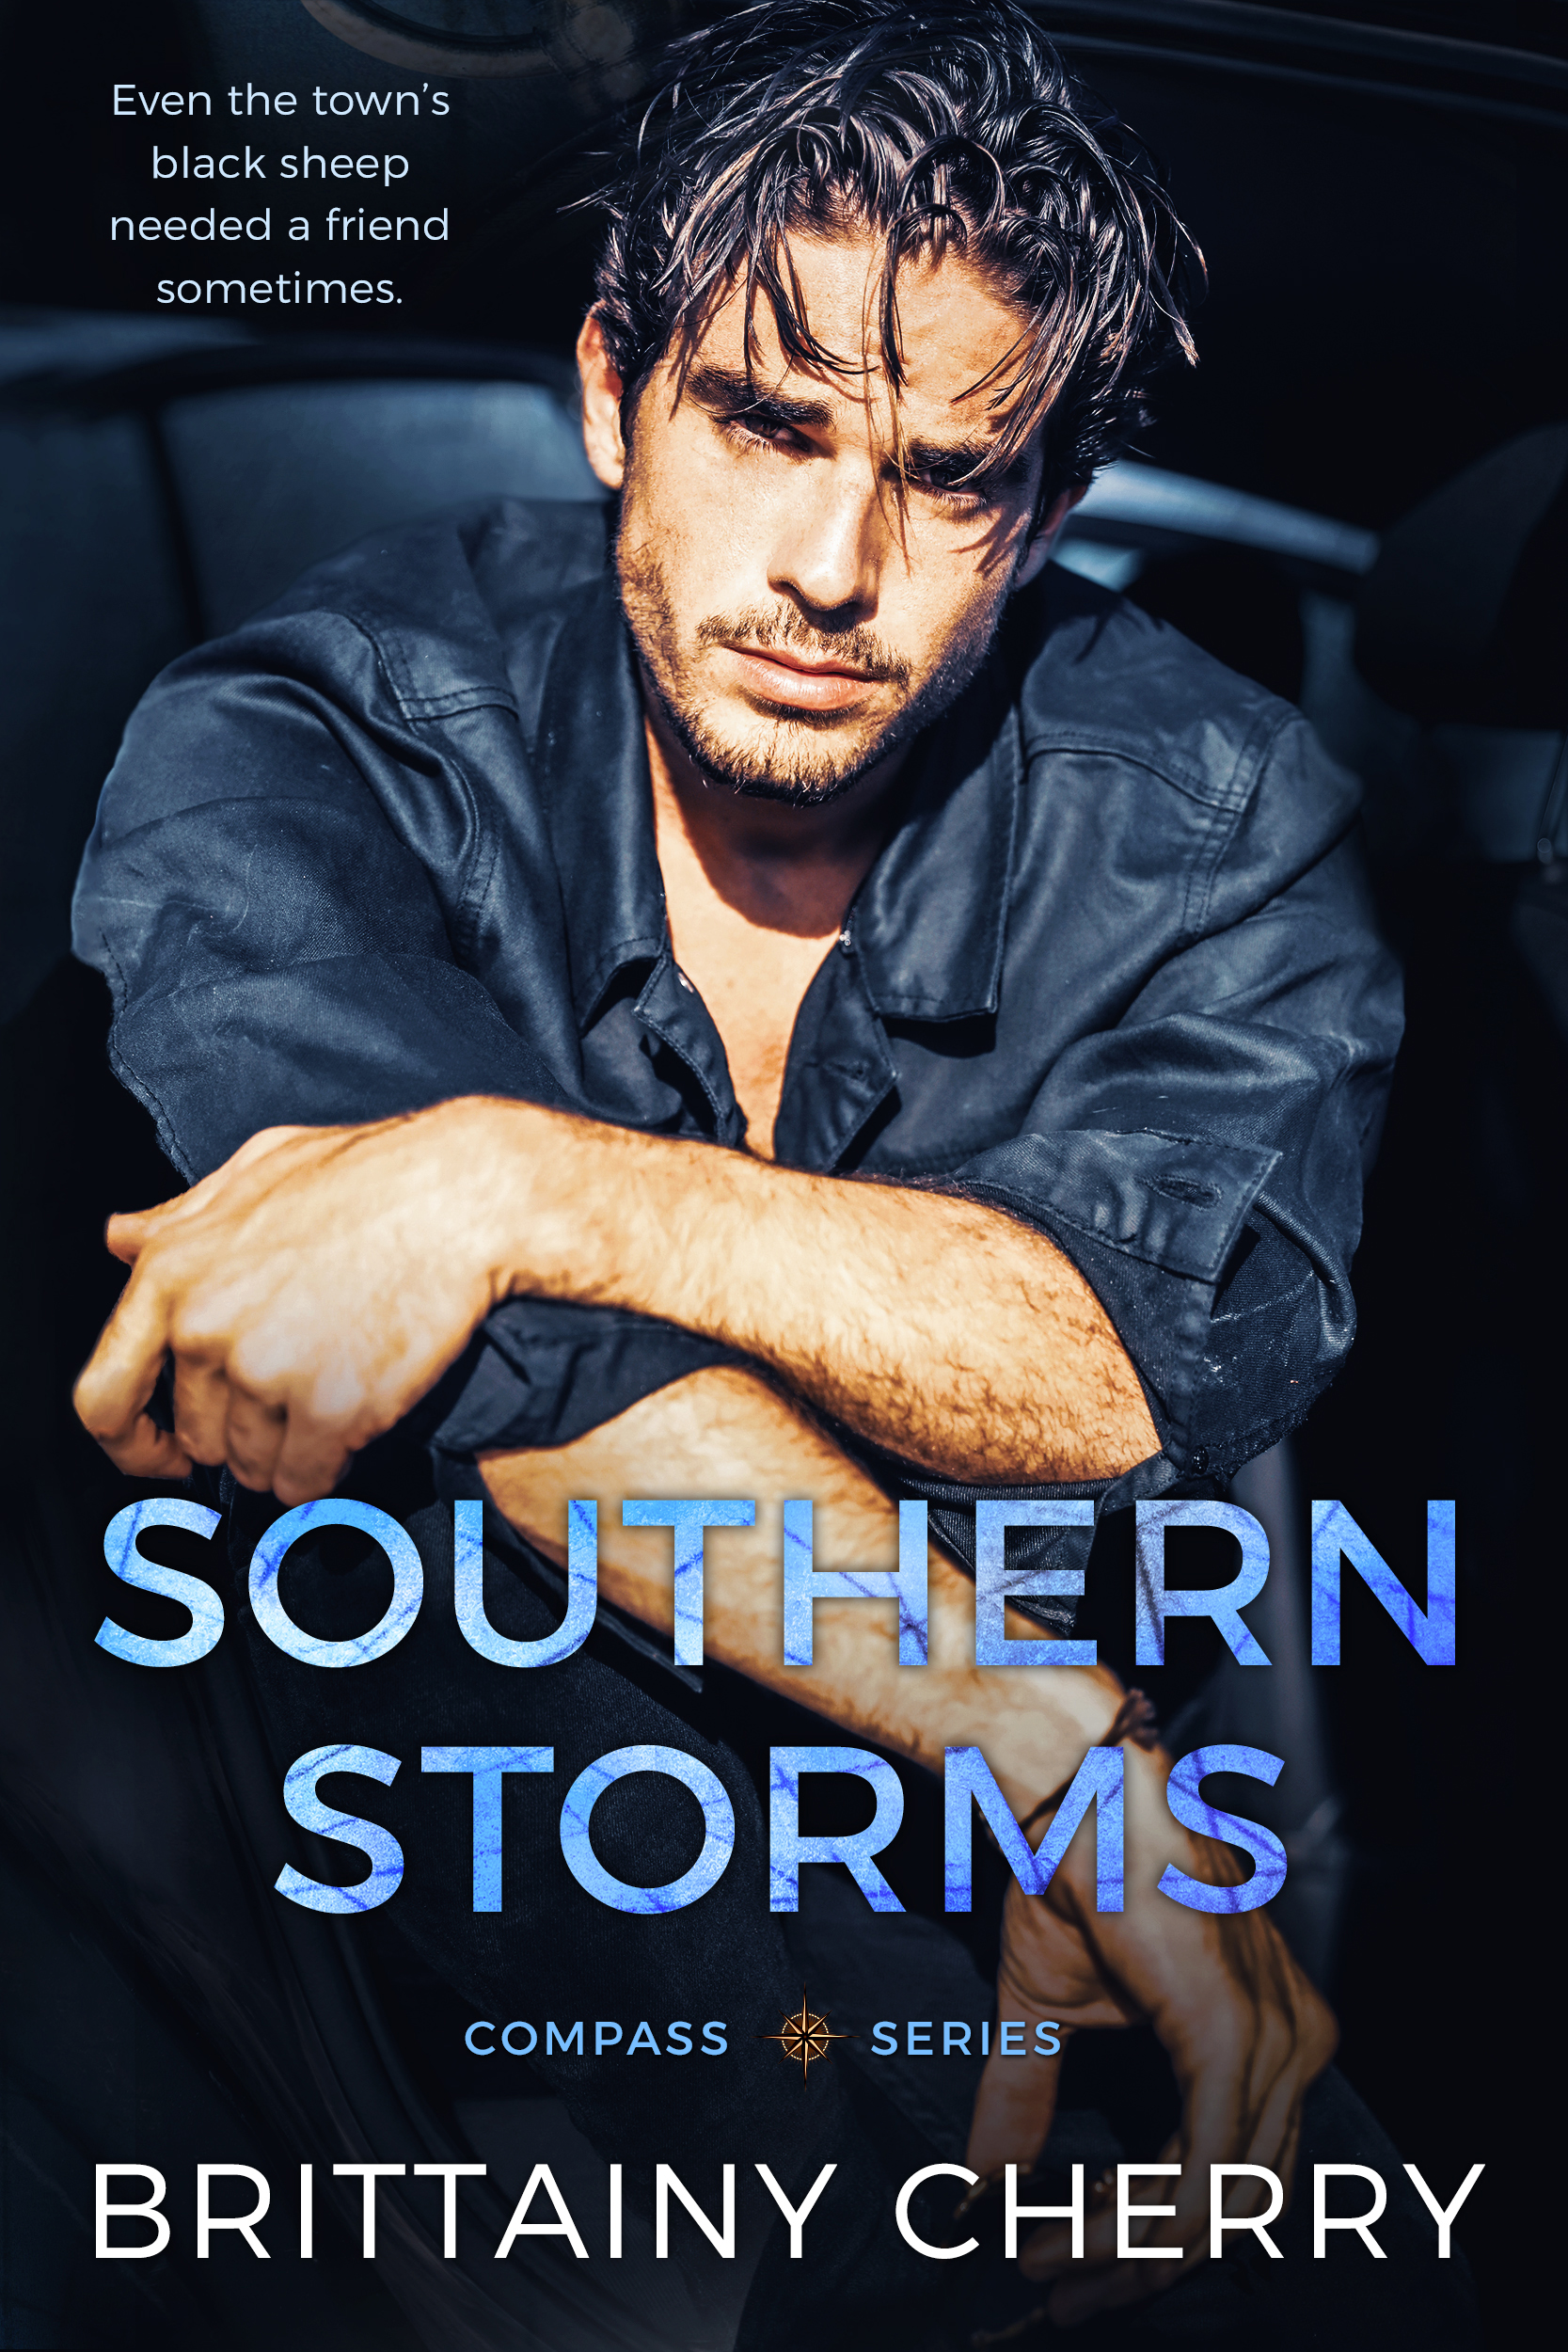 Southern Storms (Compass #1) - Brittainy Cherry